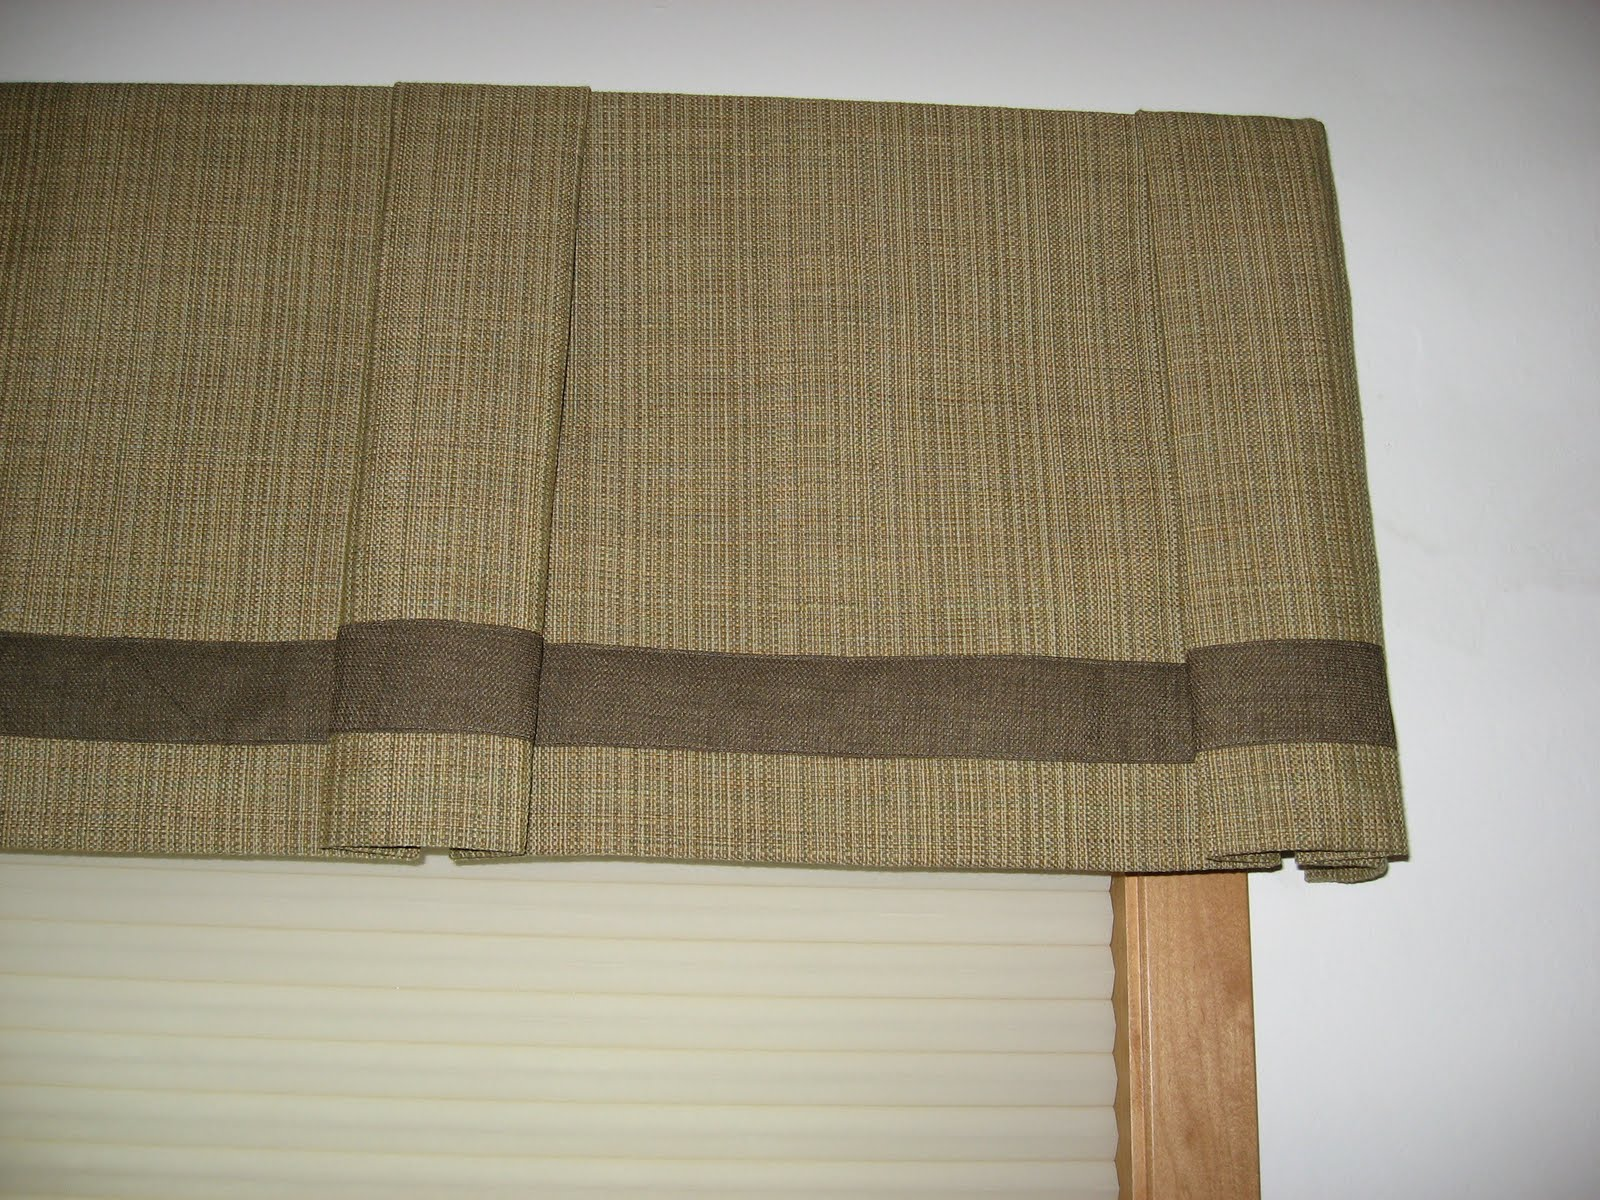 Window Fashions Box pleat valance trimmed with banding